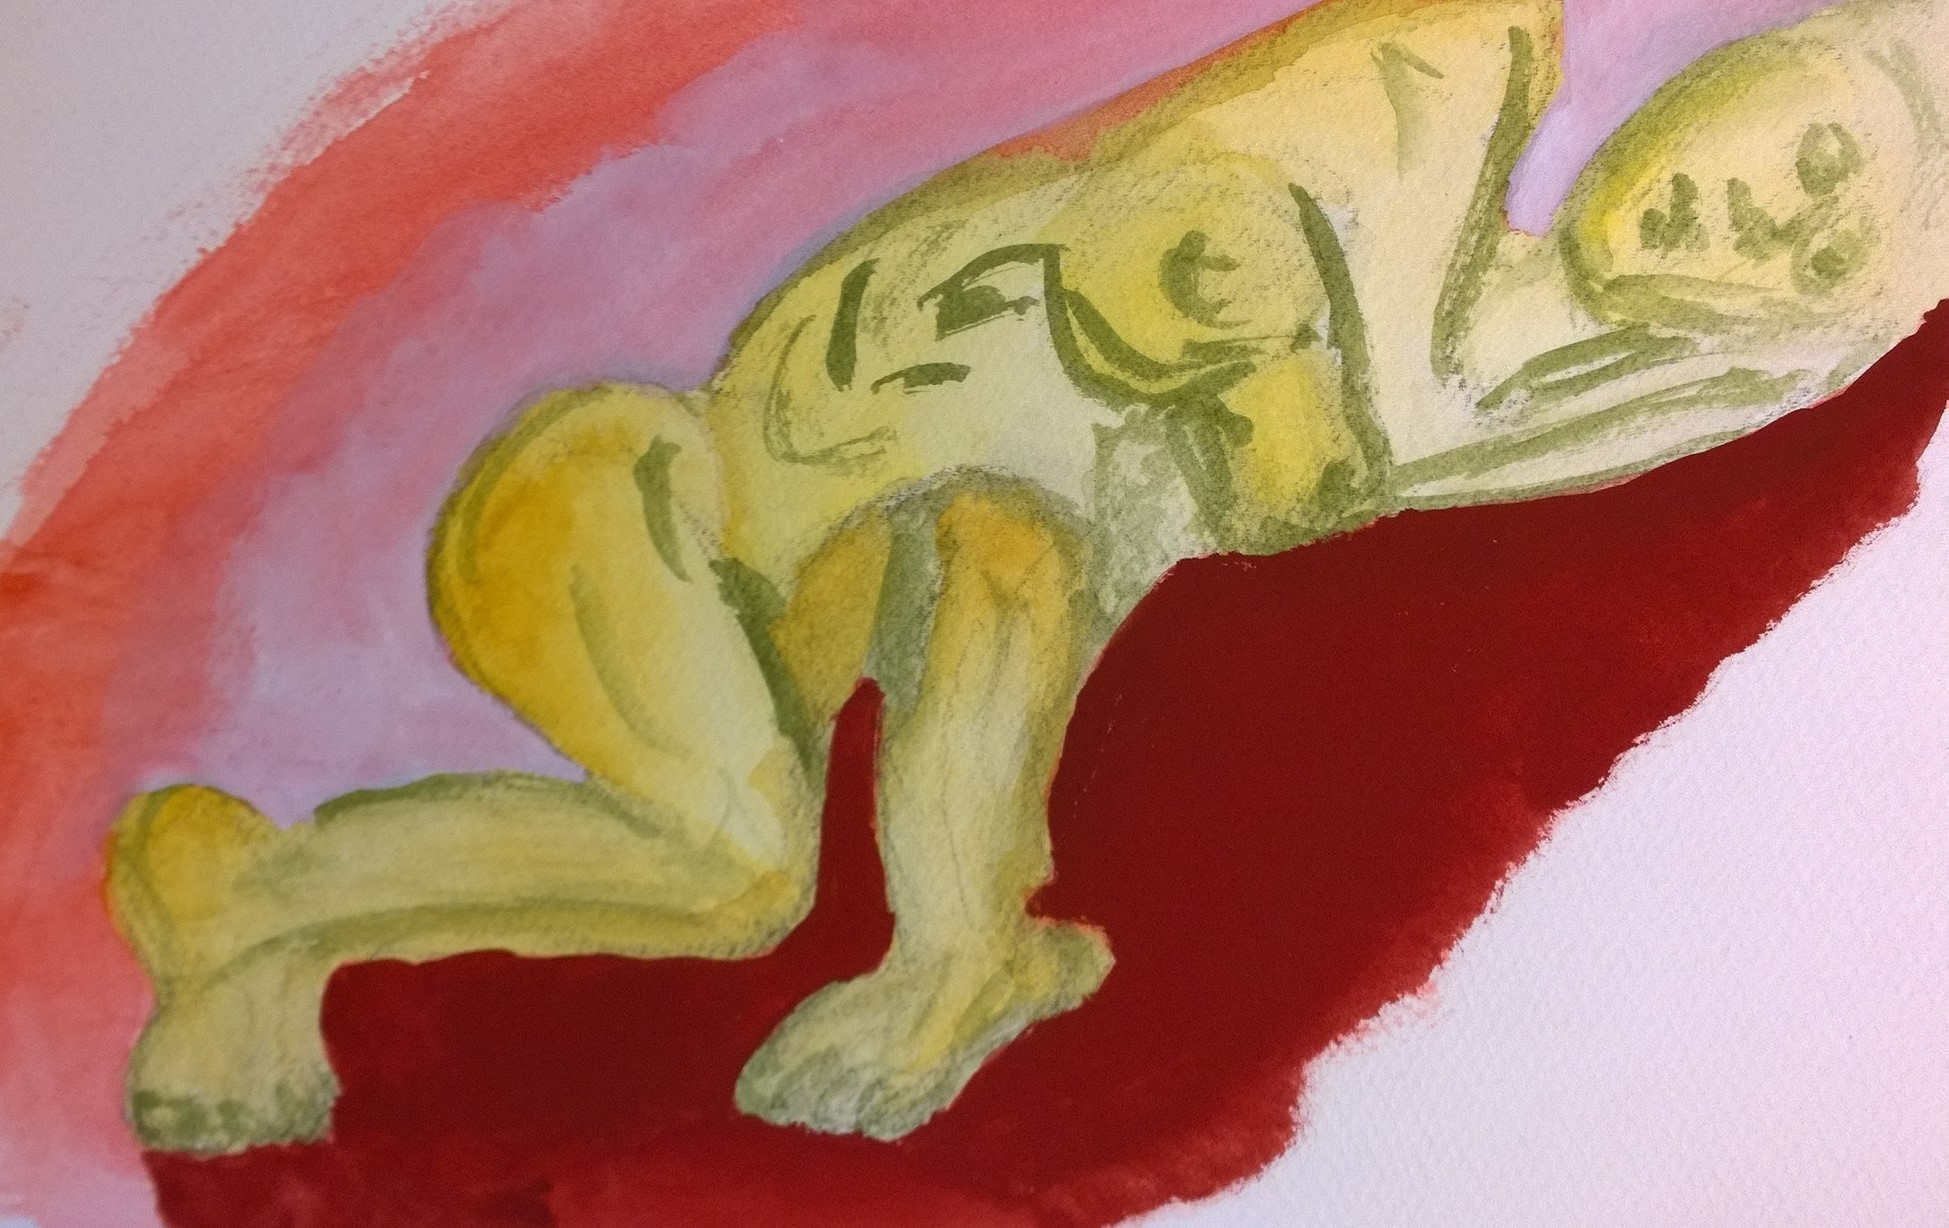 Sleeping nude encased in background, gouache painting by William Eaton